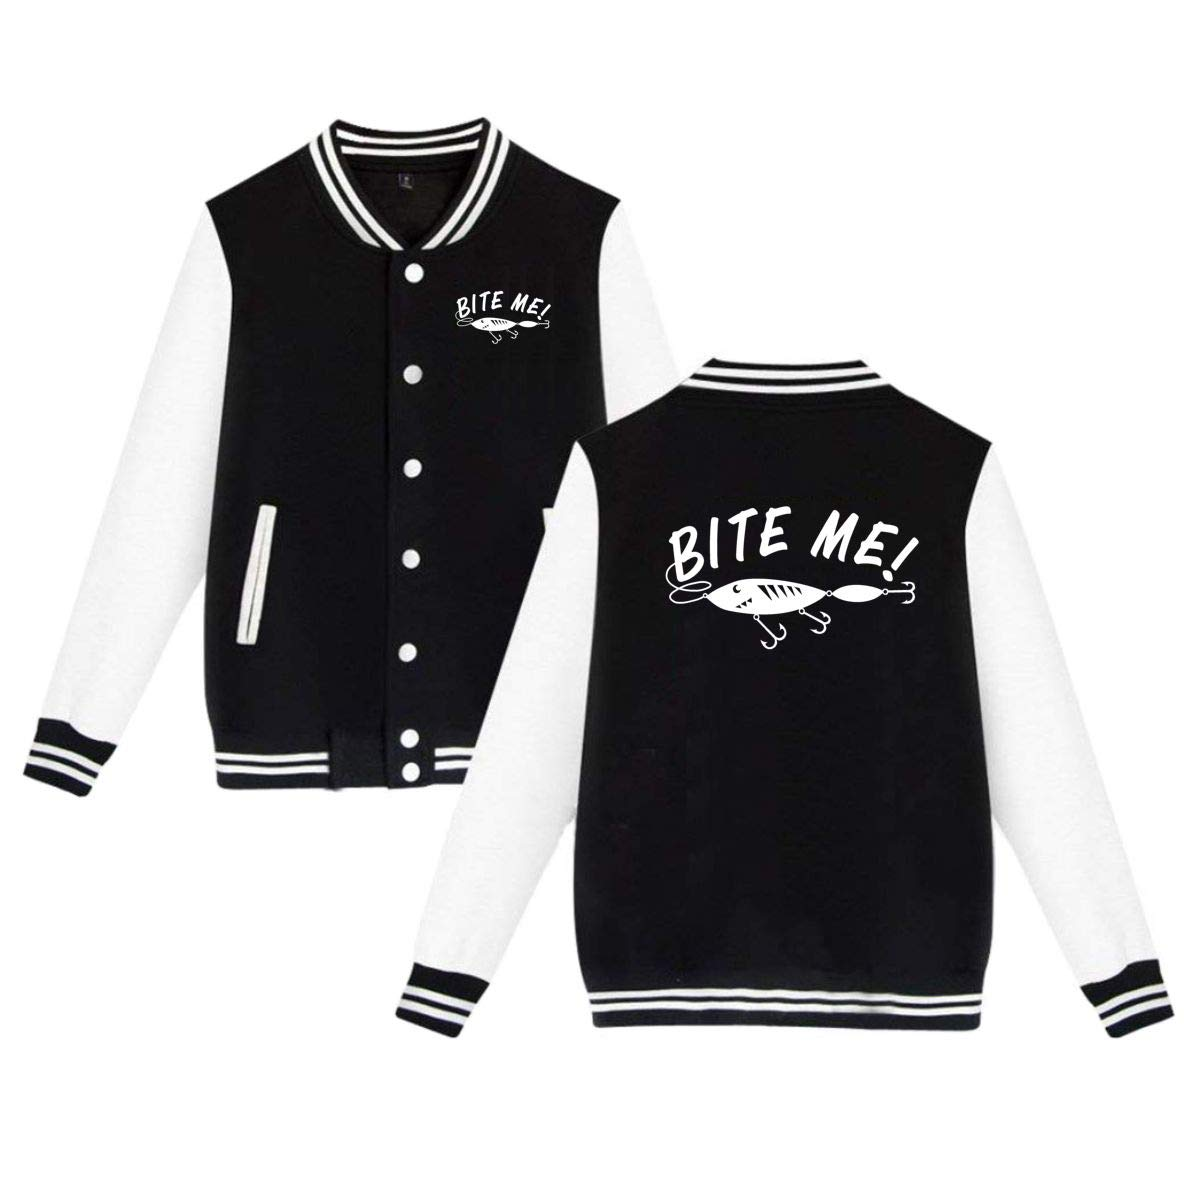 MEILOP Unisex Bite Me Funny Fishing Baseball Jacket Uniform Sweater Coat